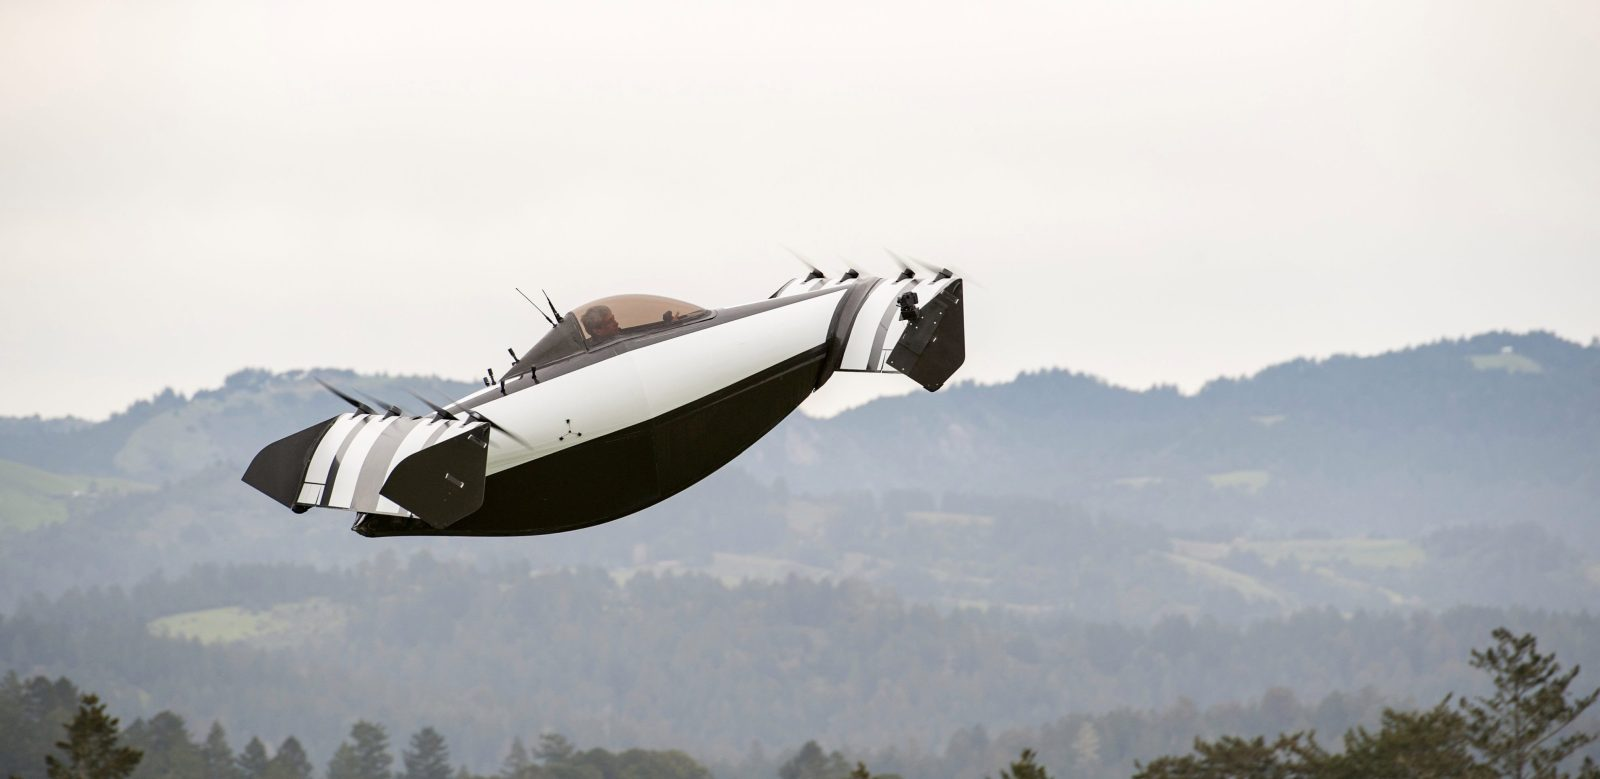 Uber Black Car List >> Watch impressive new all-electric personal VTOL aircraft working prototype - Electrek